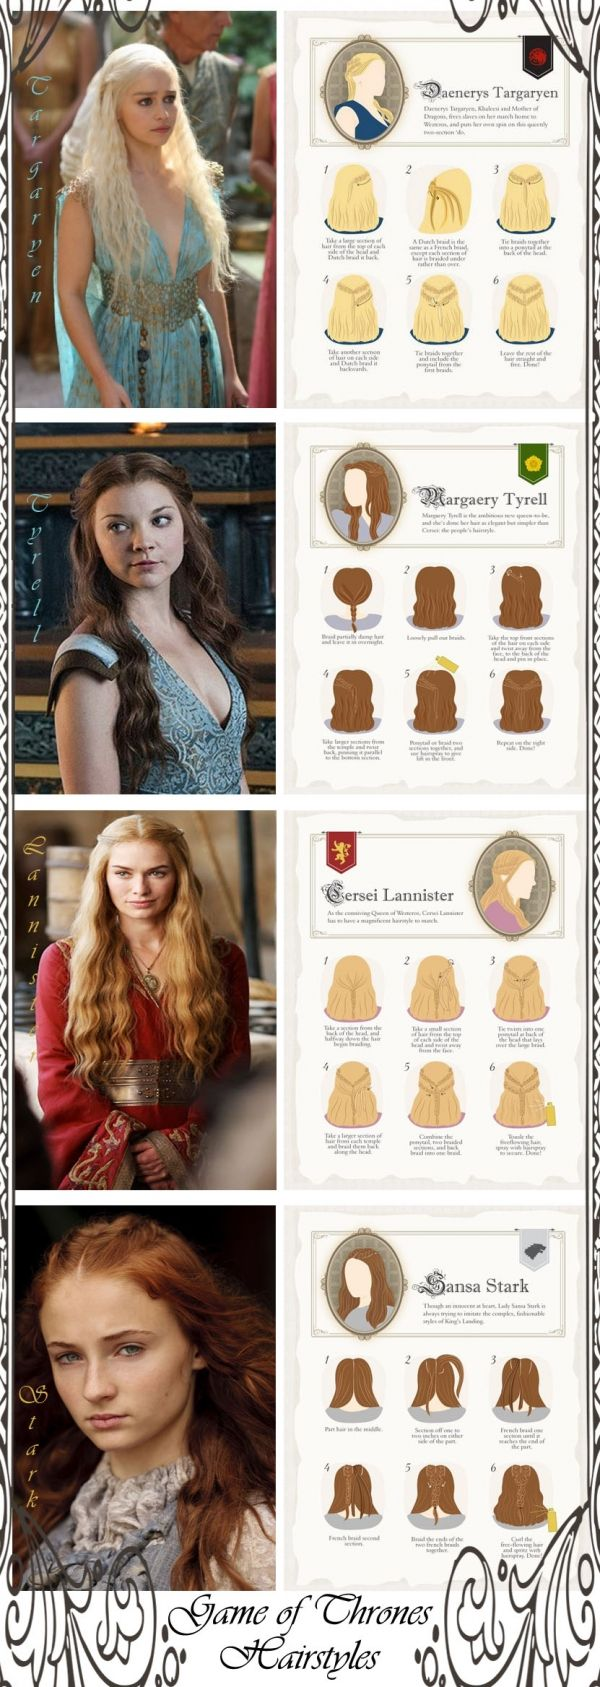 4 5 Game of Thrones Hairstyles Fuel Your Braid